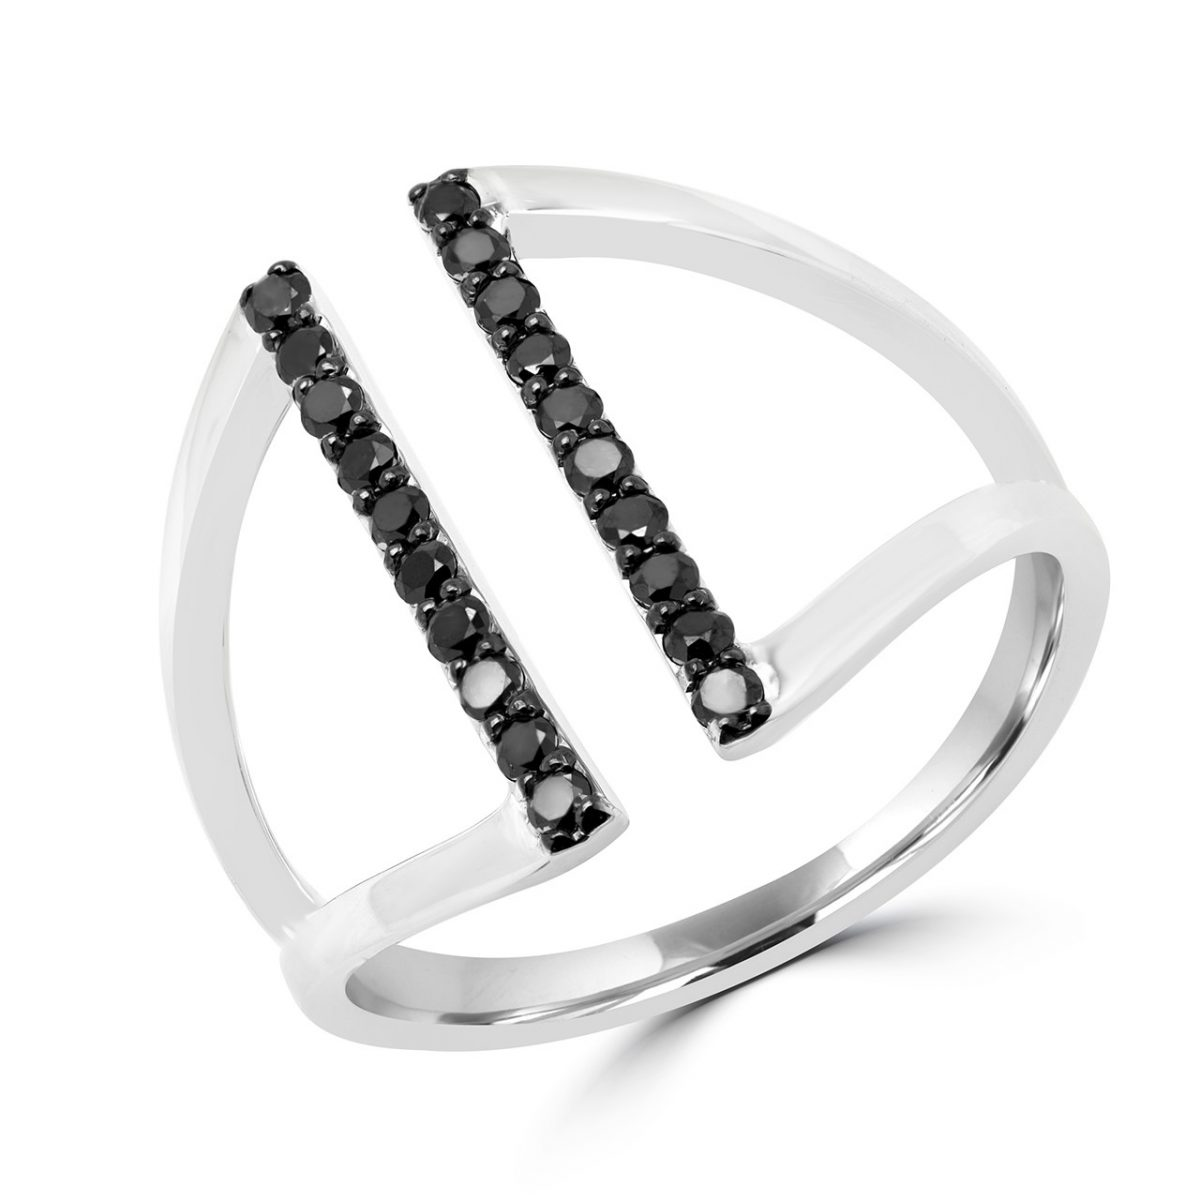 Trendy black diamond ring 0.20 (ctw) in 10k white gold